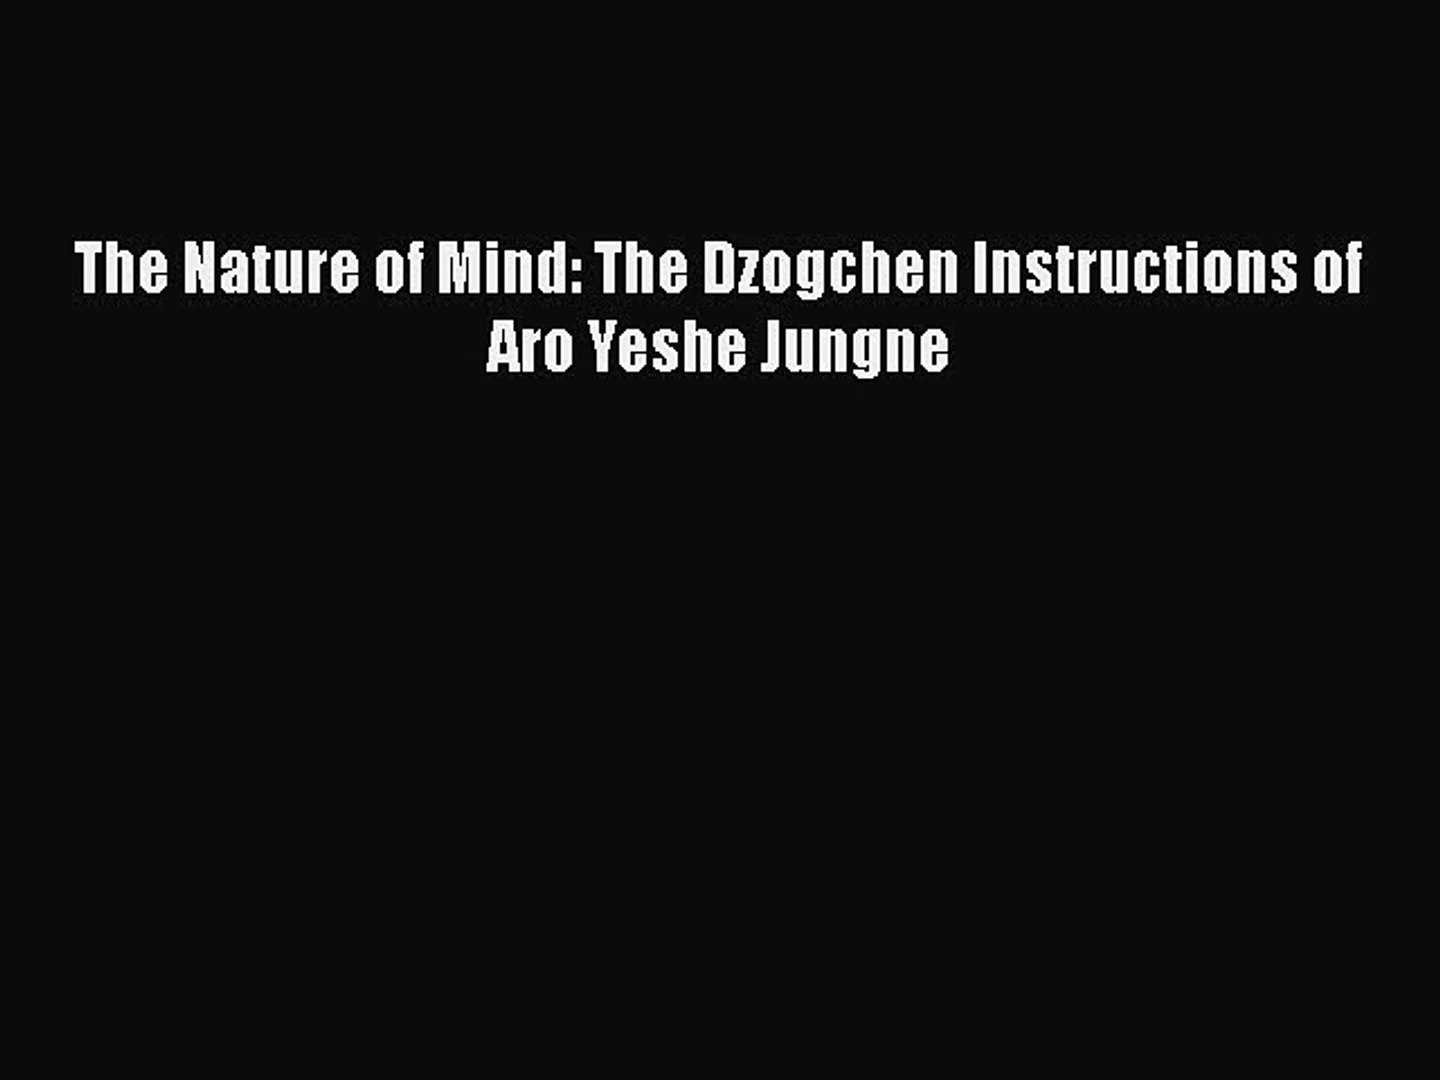 Download Books The Nature of Mind: The Dzogchen Instructions of Aro Yeshe Jungne E-Book Free